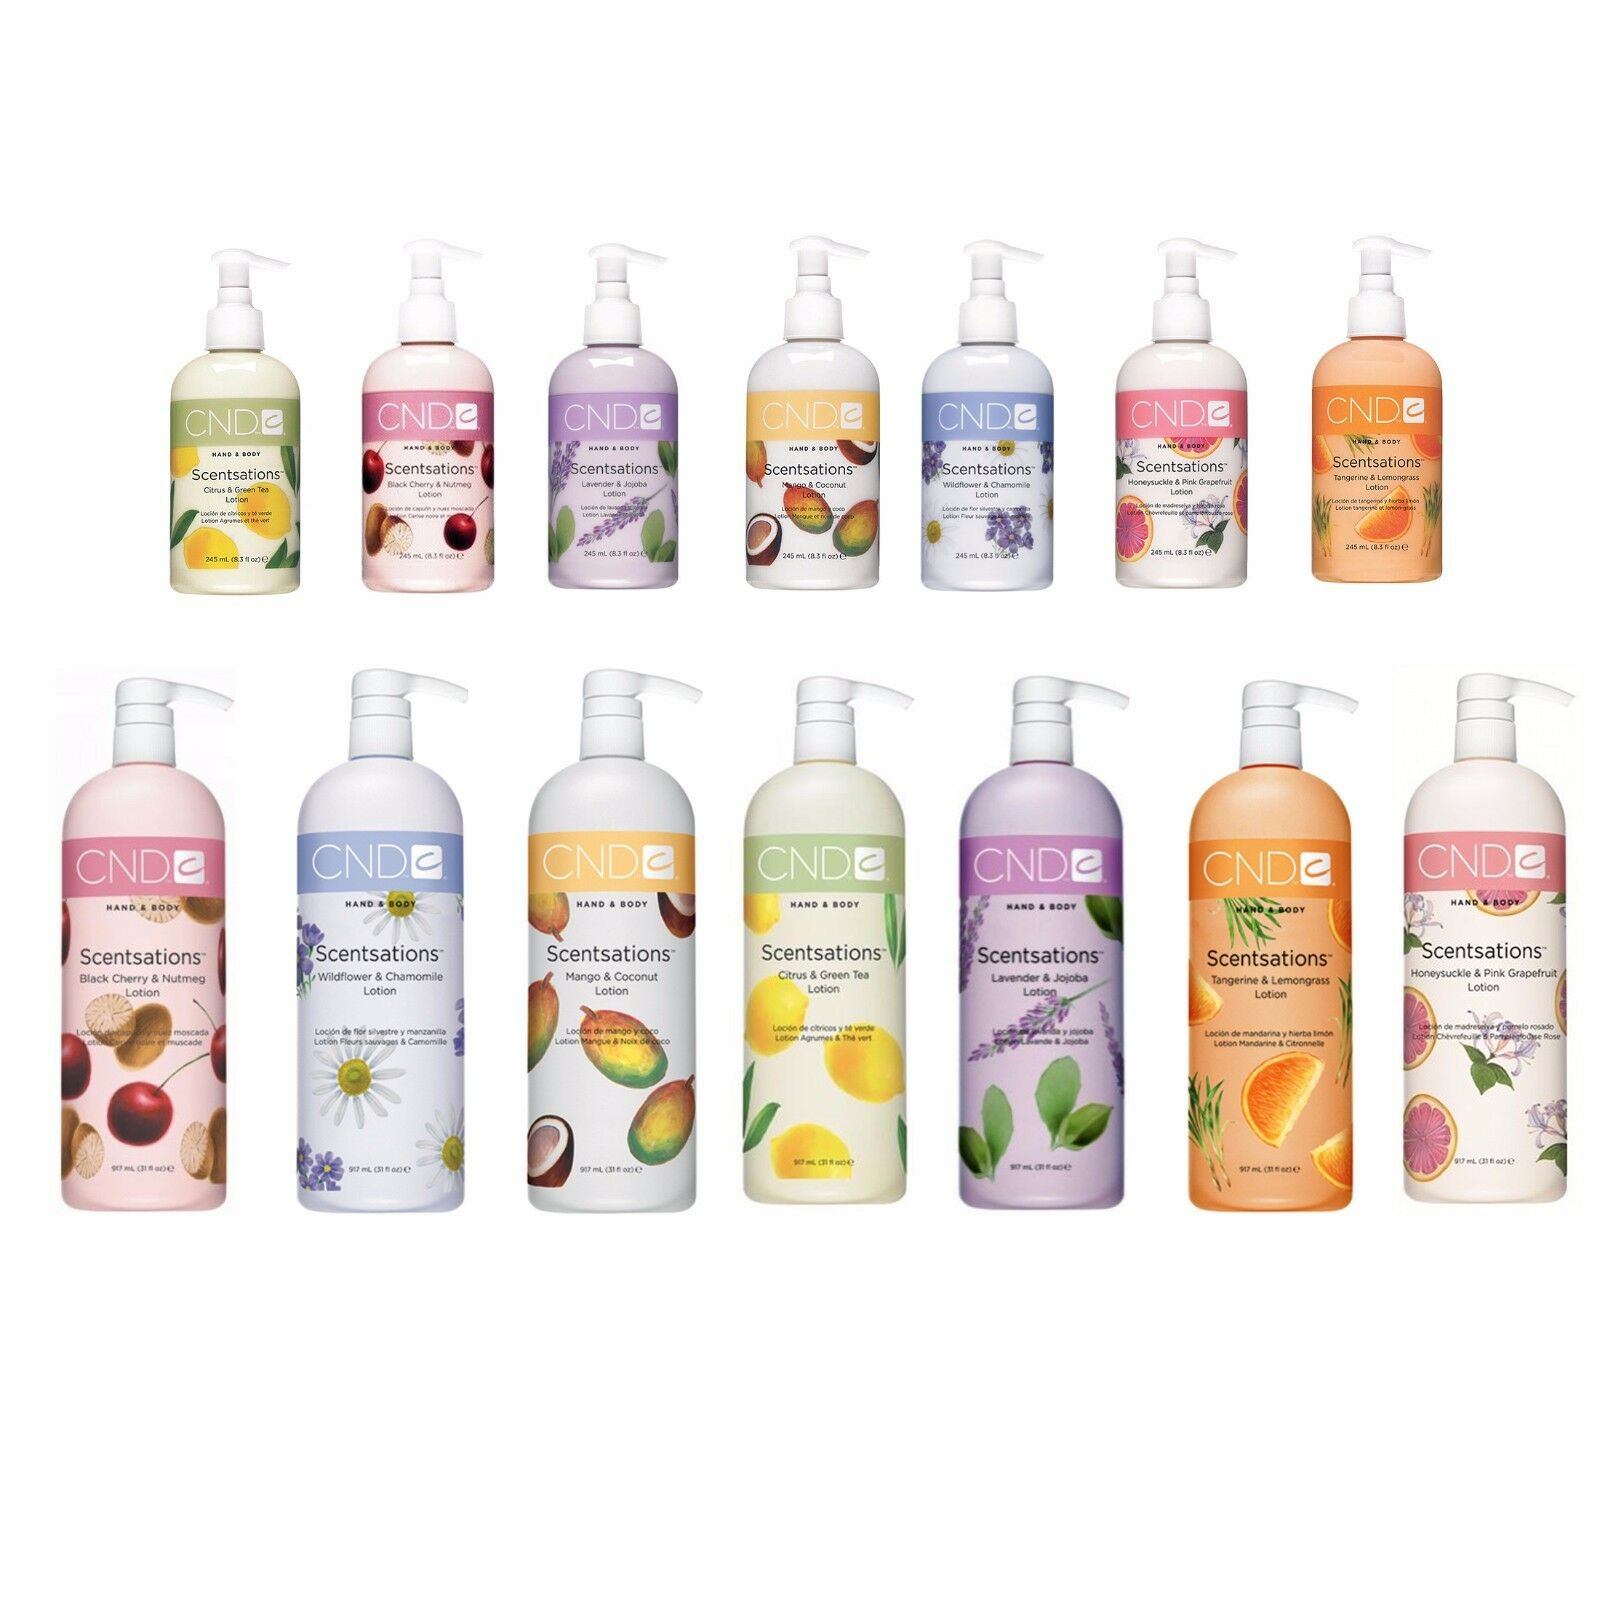 lotion hand and body scentsations lotions size